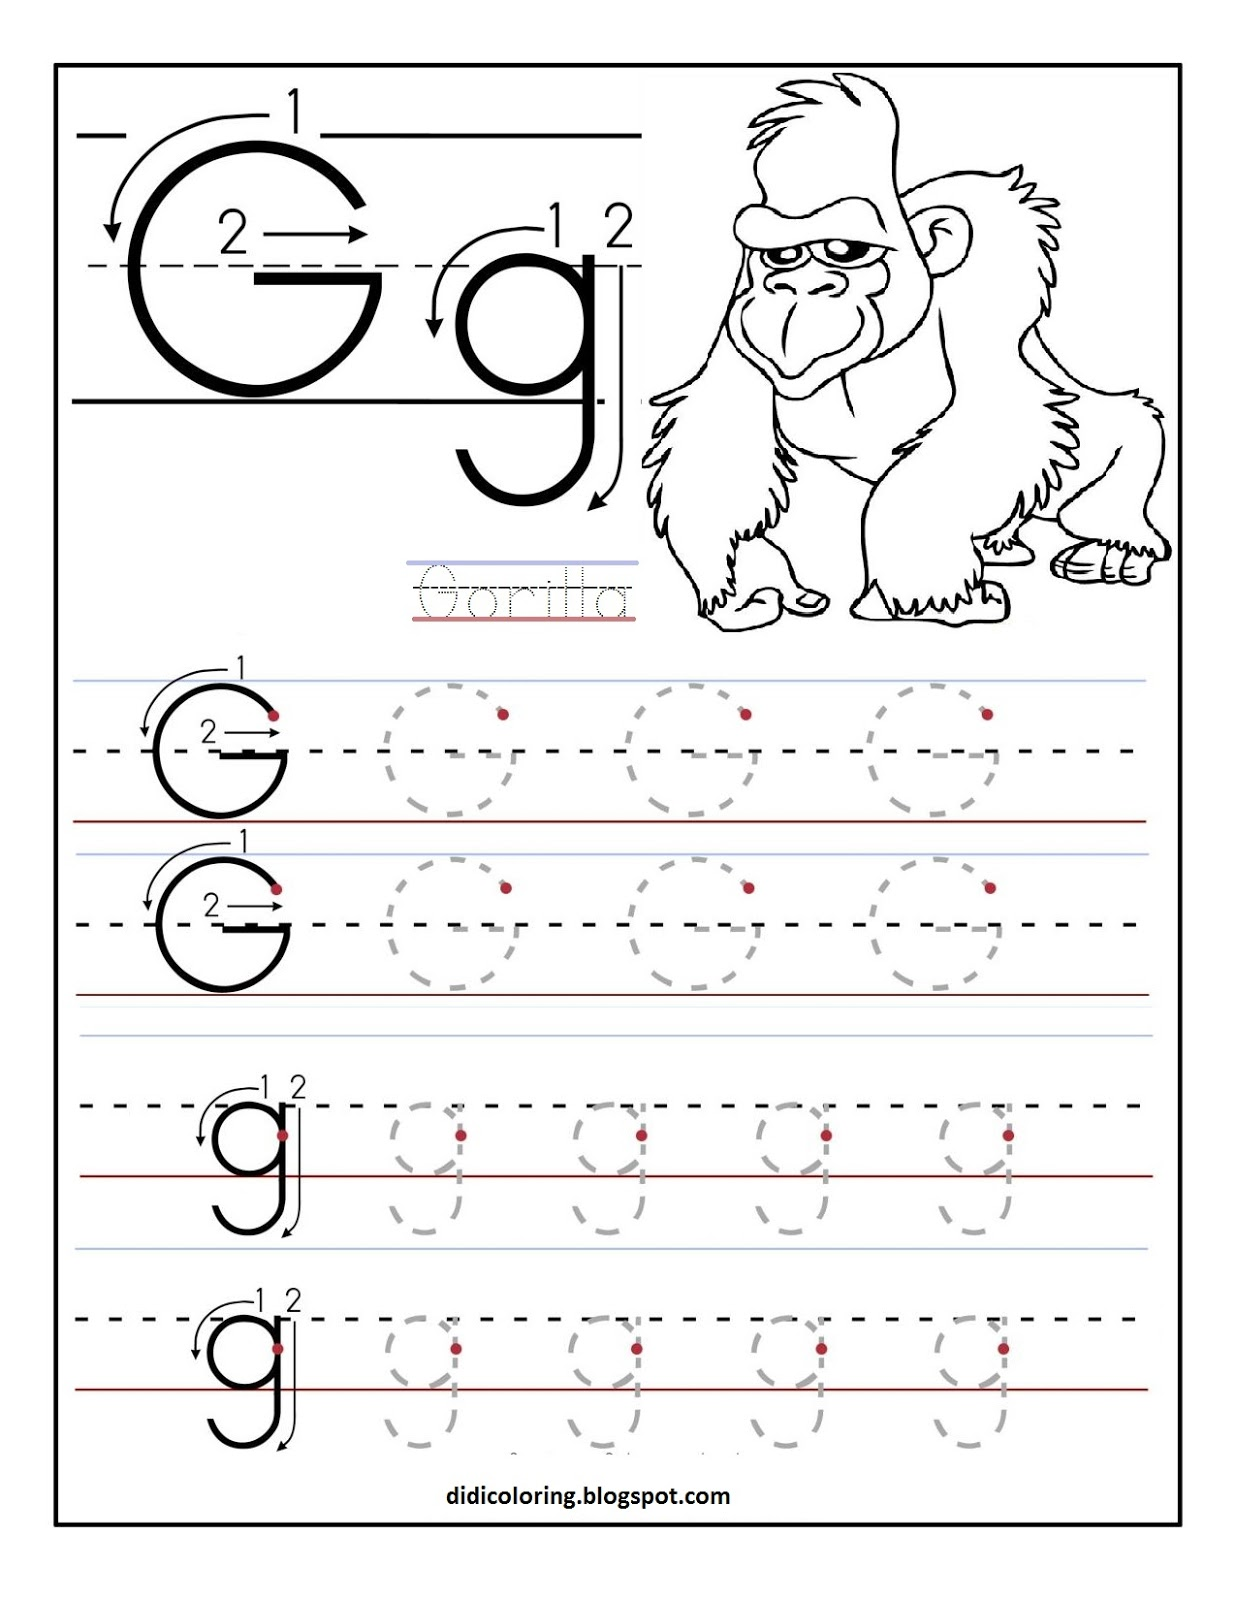 free printable worksheet letter g for your child to learn and